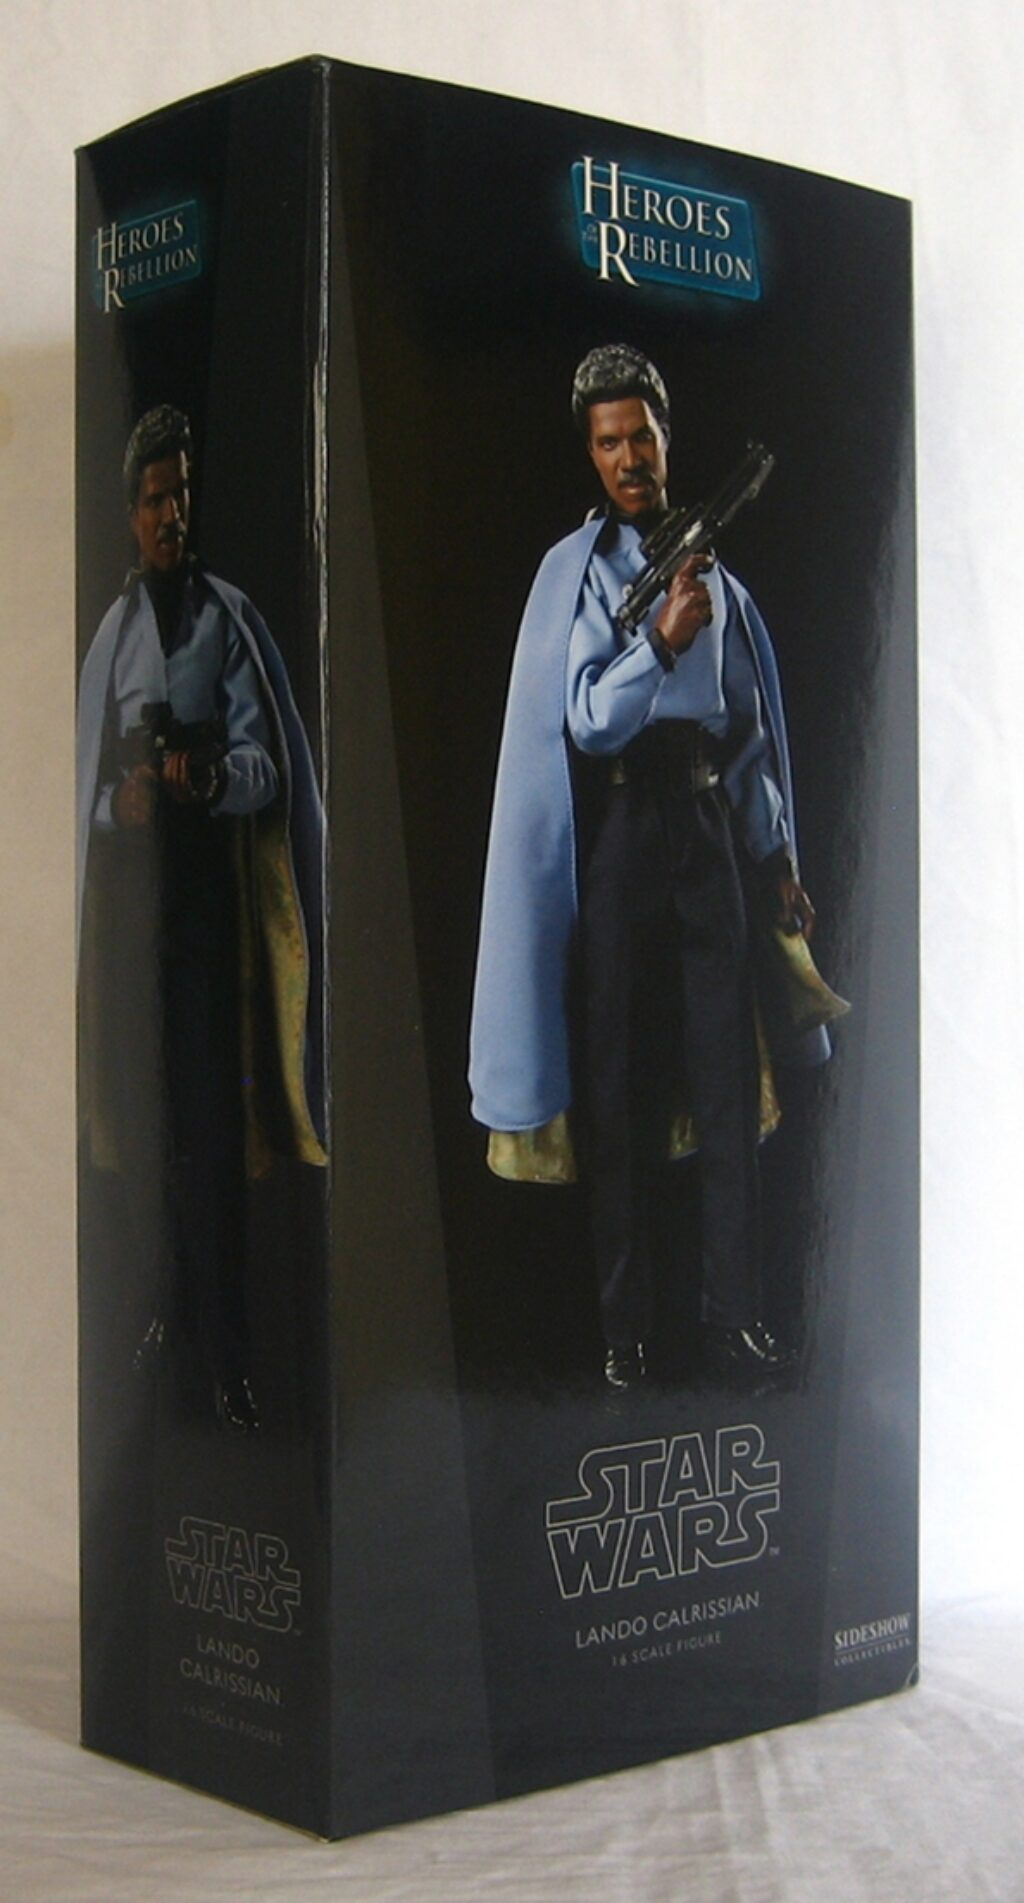 sideshow star wars lando calrissian 1:6 scale figure 1